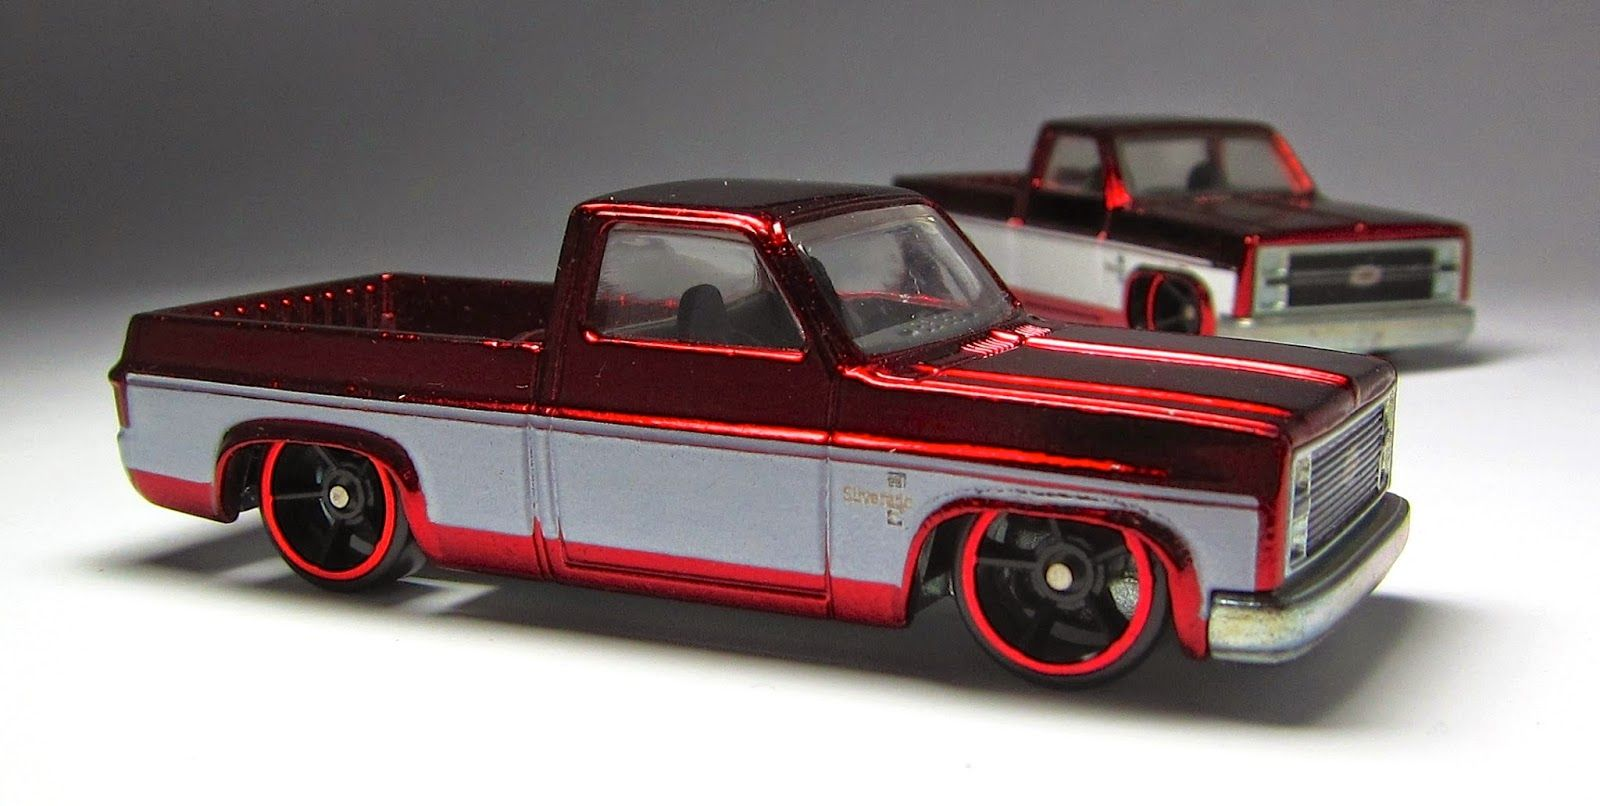 8a9ae21fad the Lamley Group: Cool is Cool is Cool: Hot Wheels '83 Chevy ...